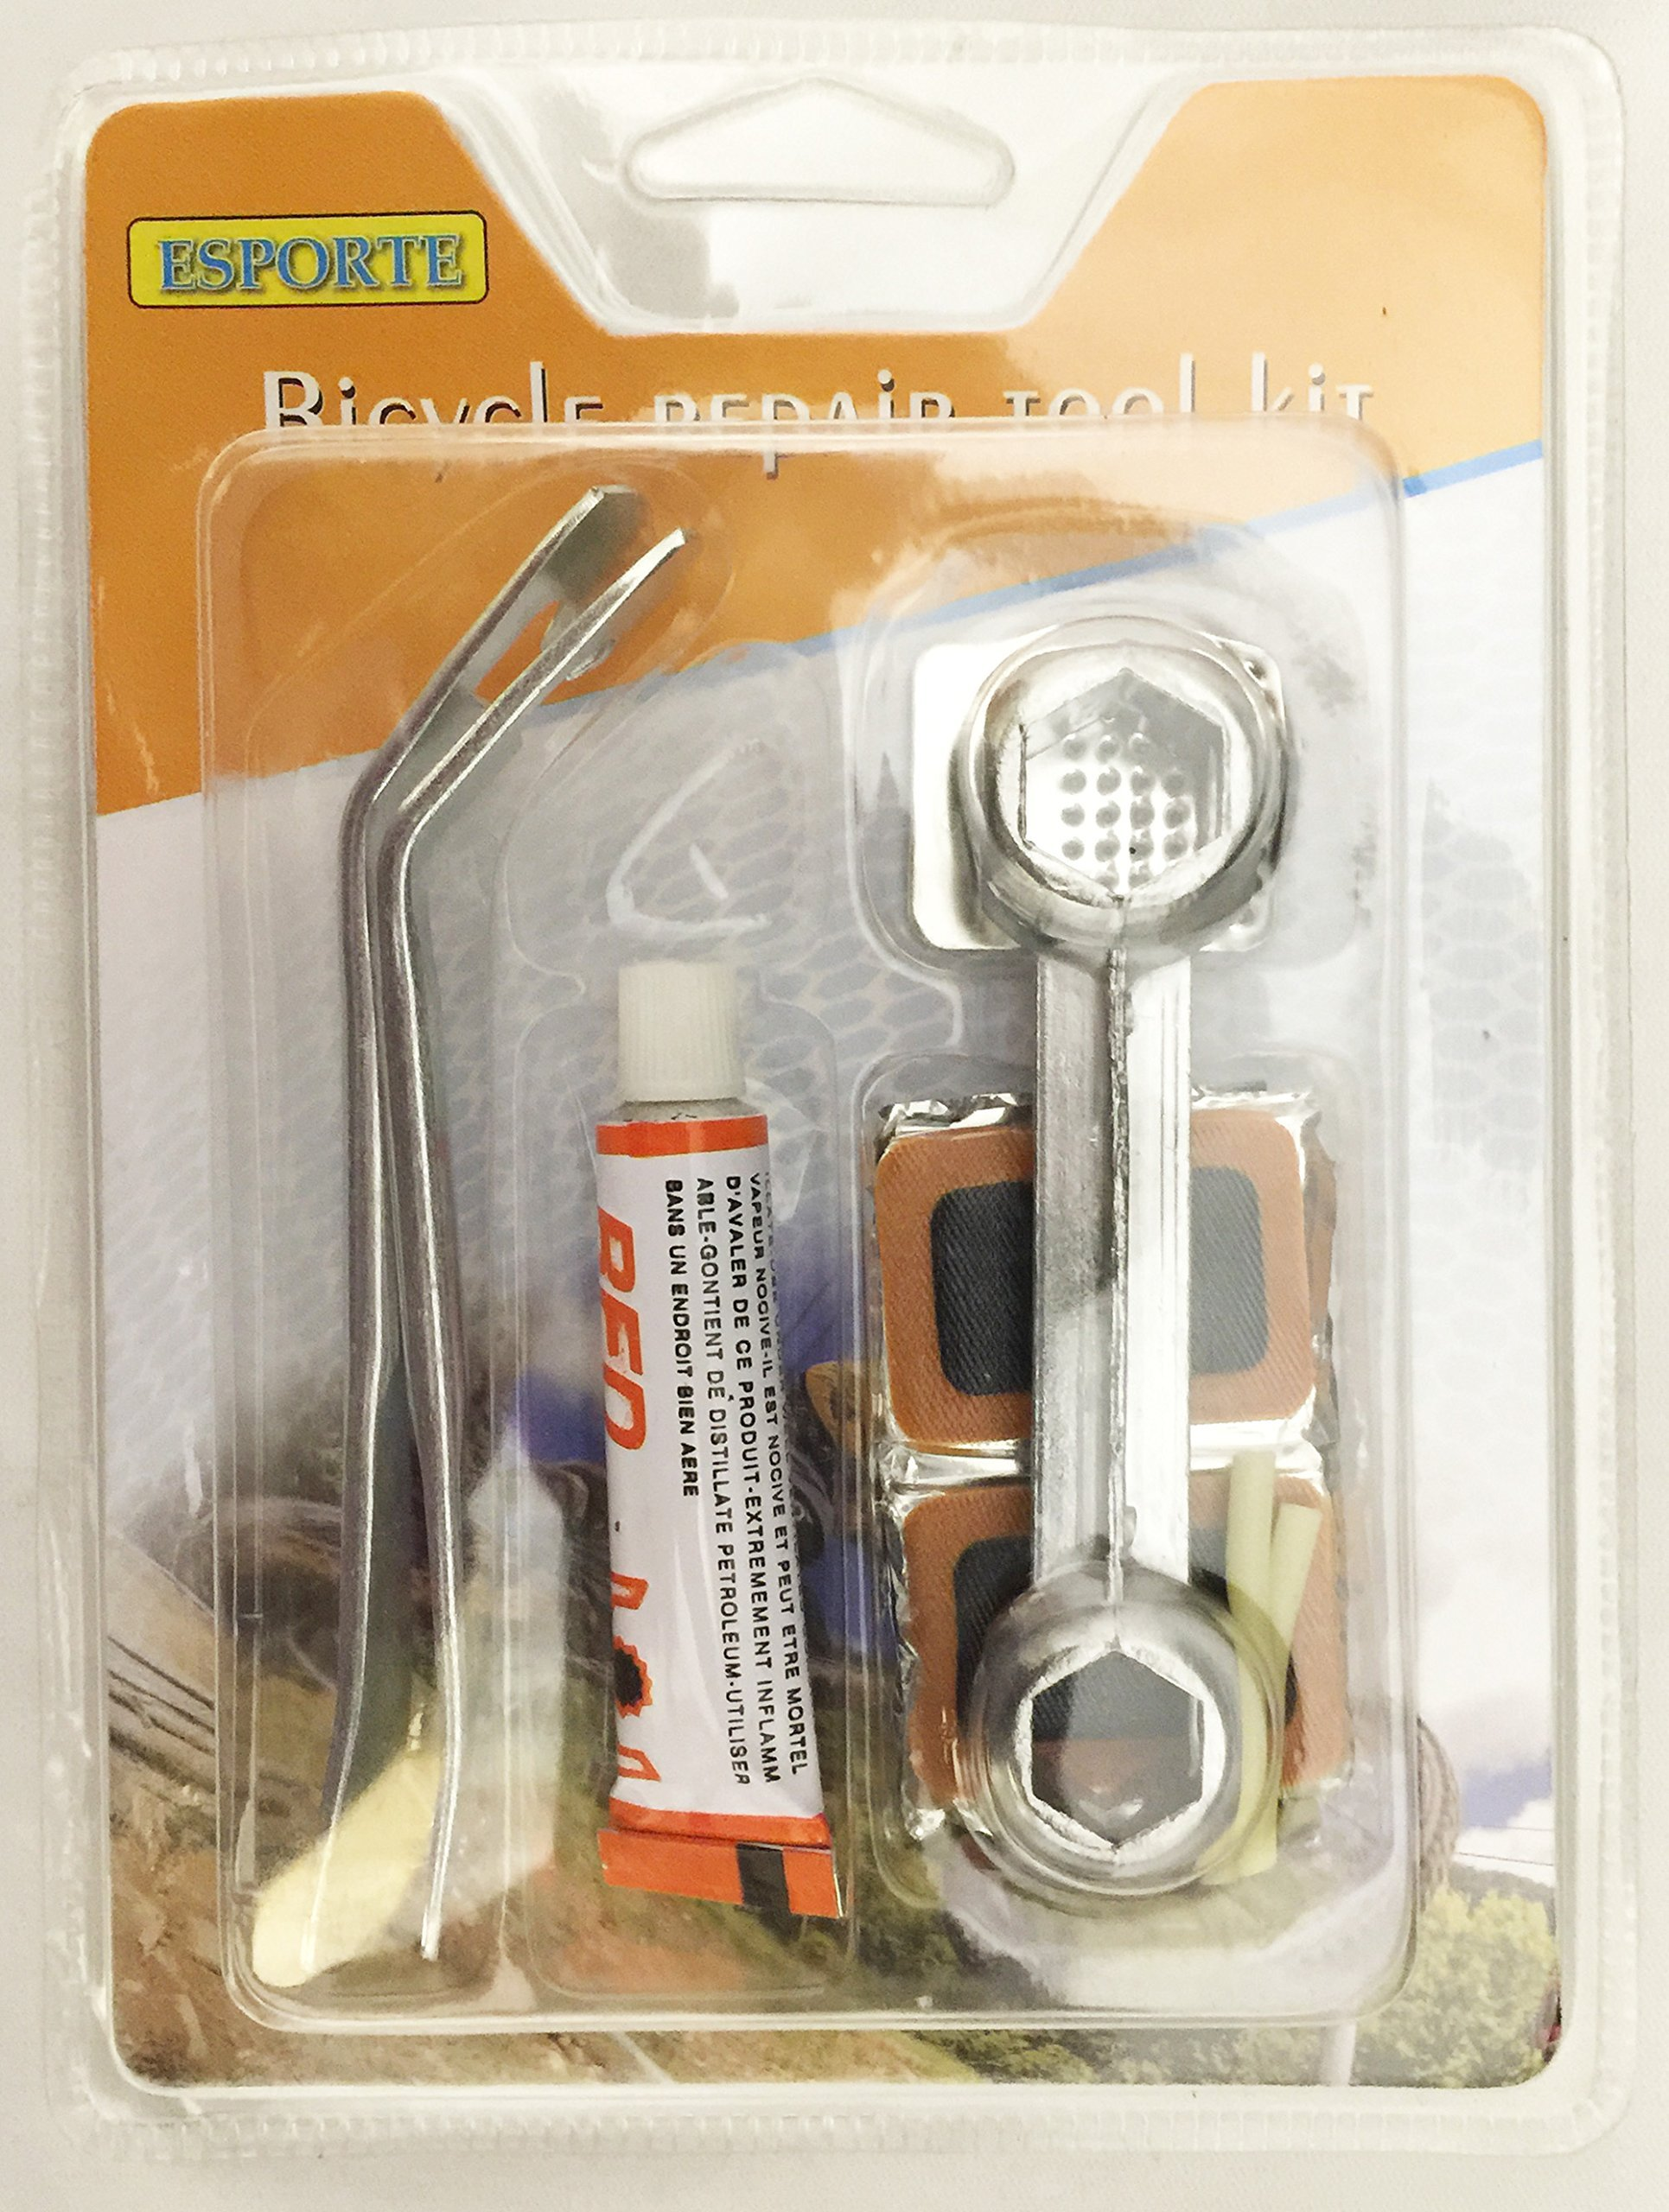 Creative Motion 14134-0 Bicycle Repair Tool Kit with Glue & patches For Tires